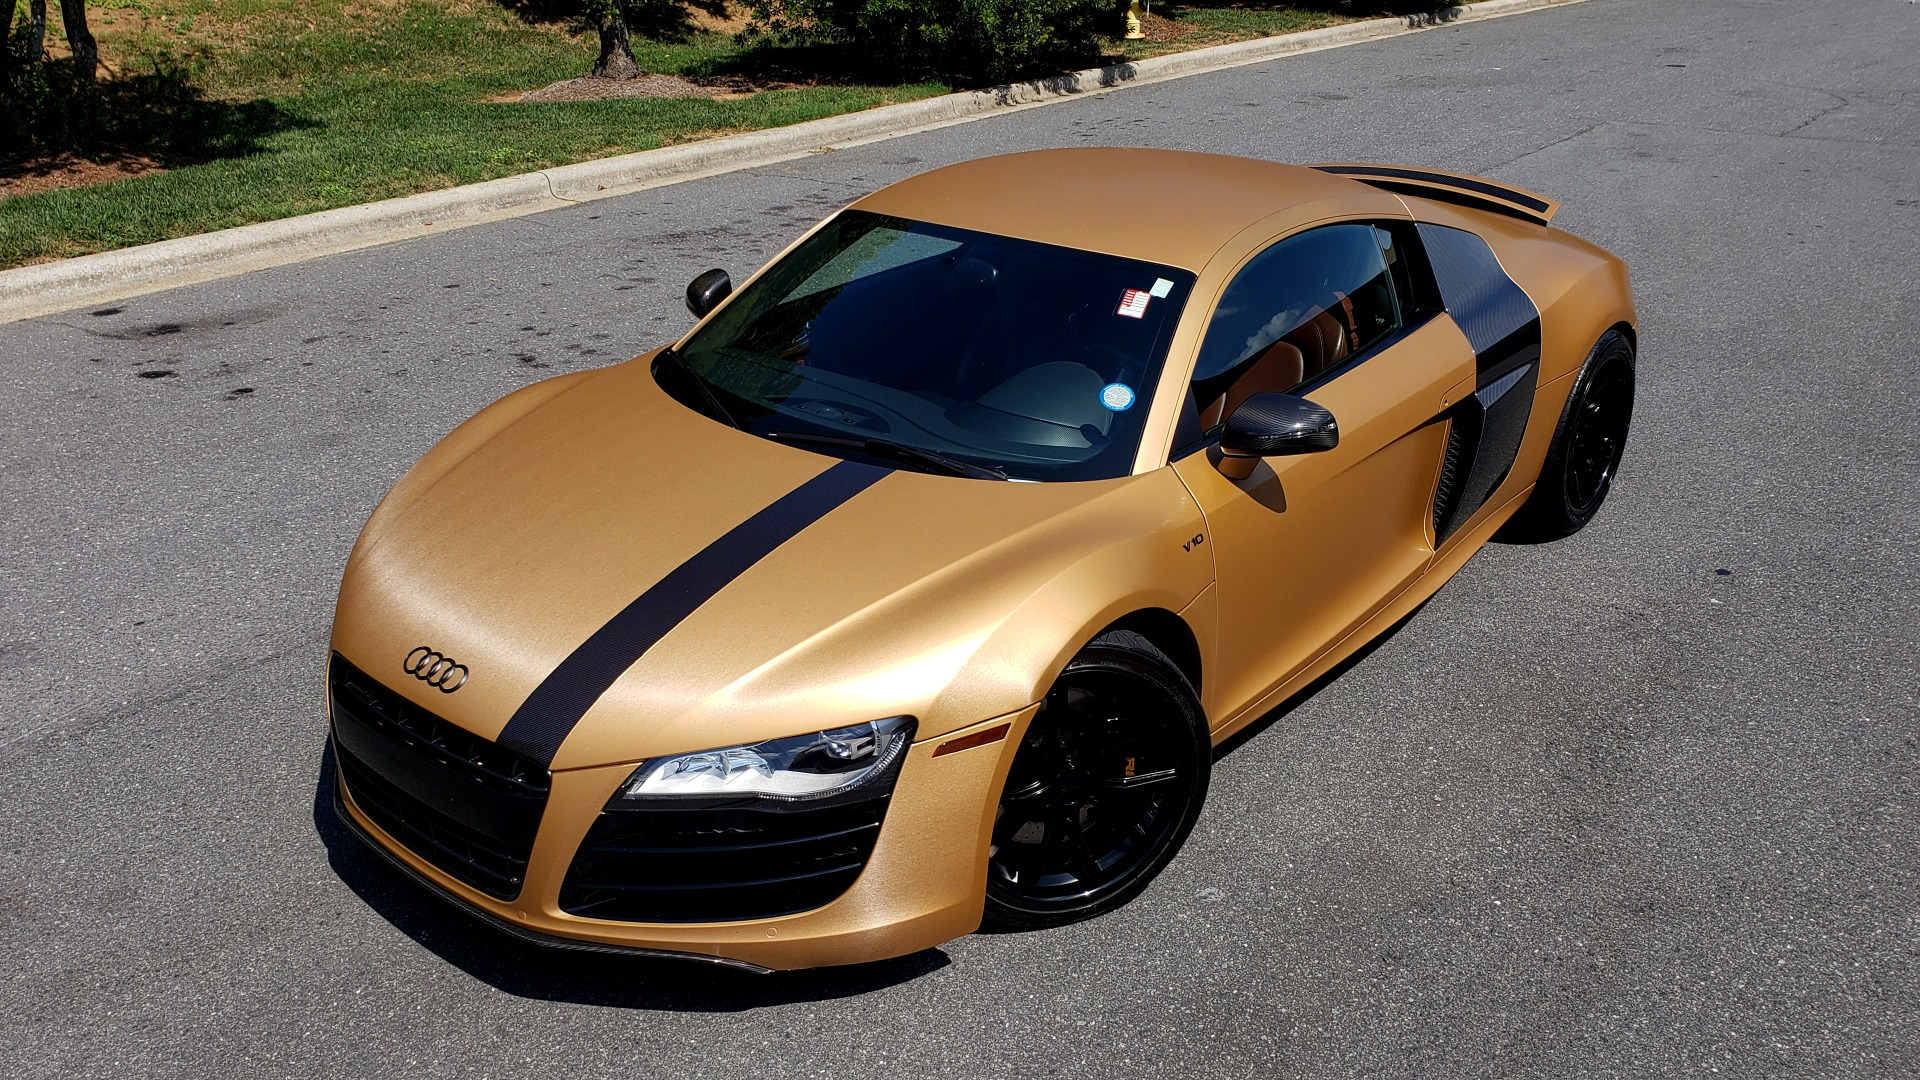 Used 2012 Audi R8 V10 5.2L / CUST WRAP BRUSHED BRONZE / NAV / B&O SOUND / CUST 19IN WHLS for sale $79,999 at Formula Imports in Charlotte NC 28227 2